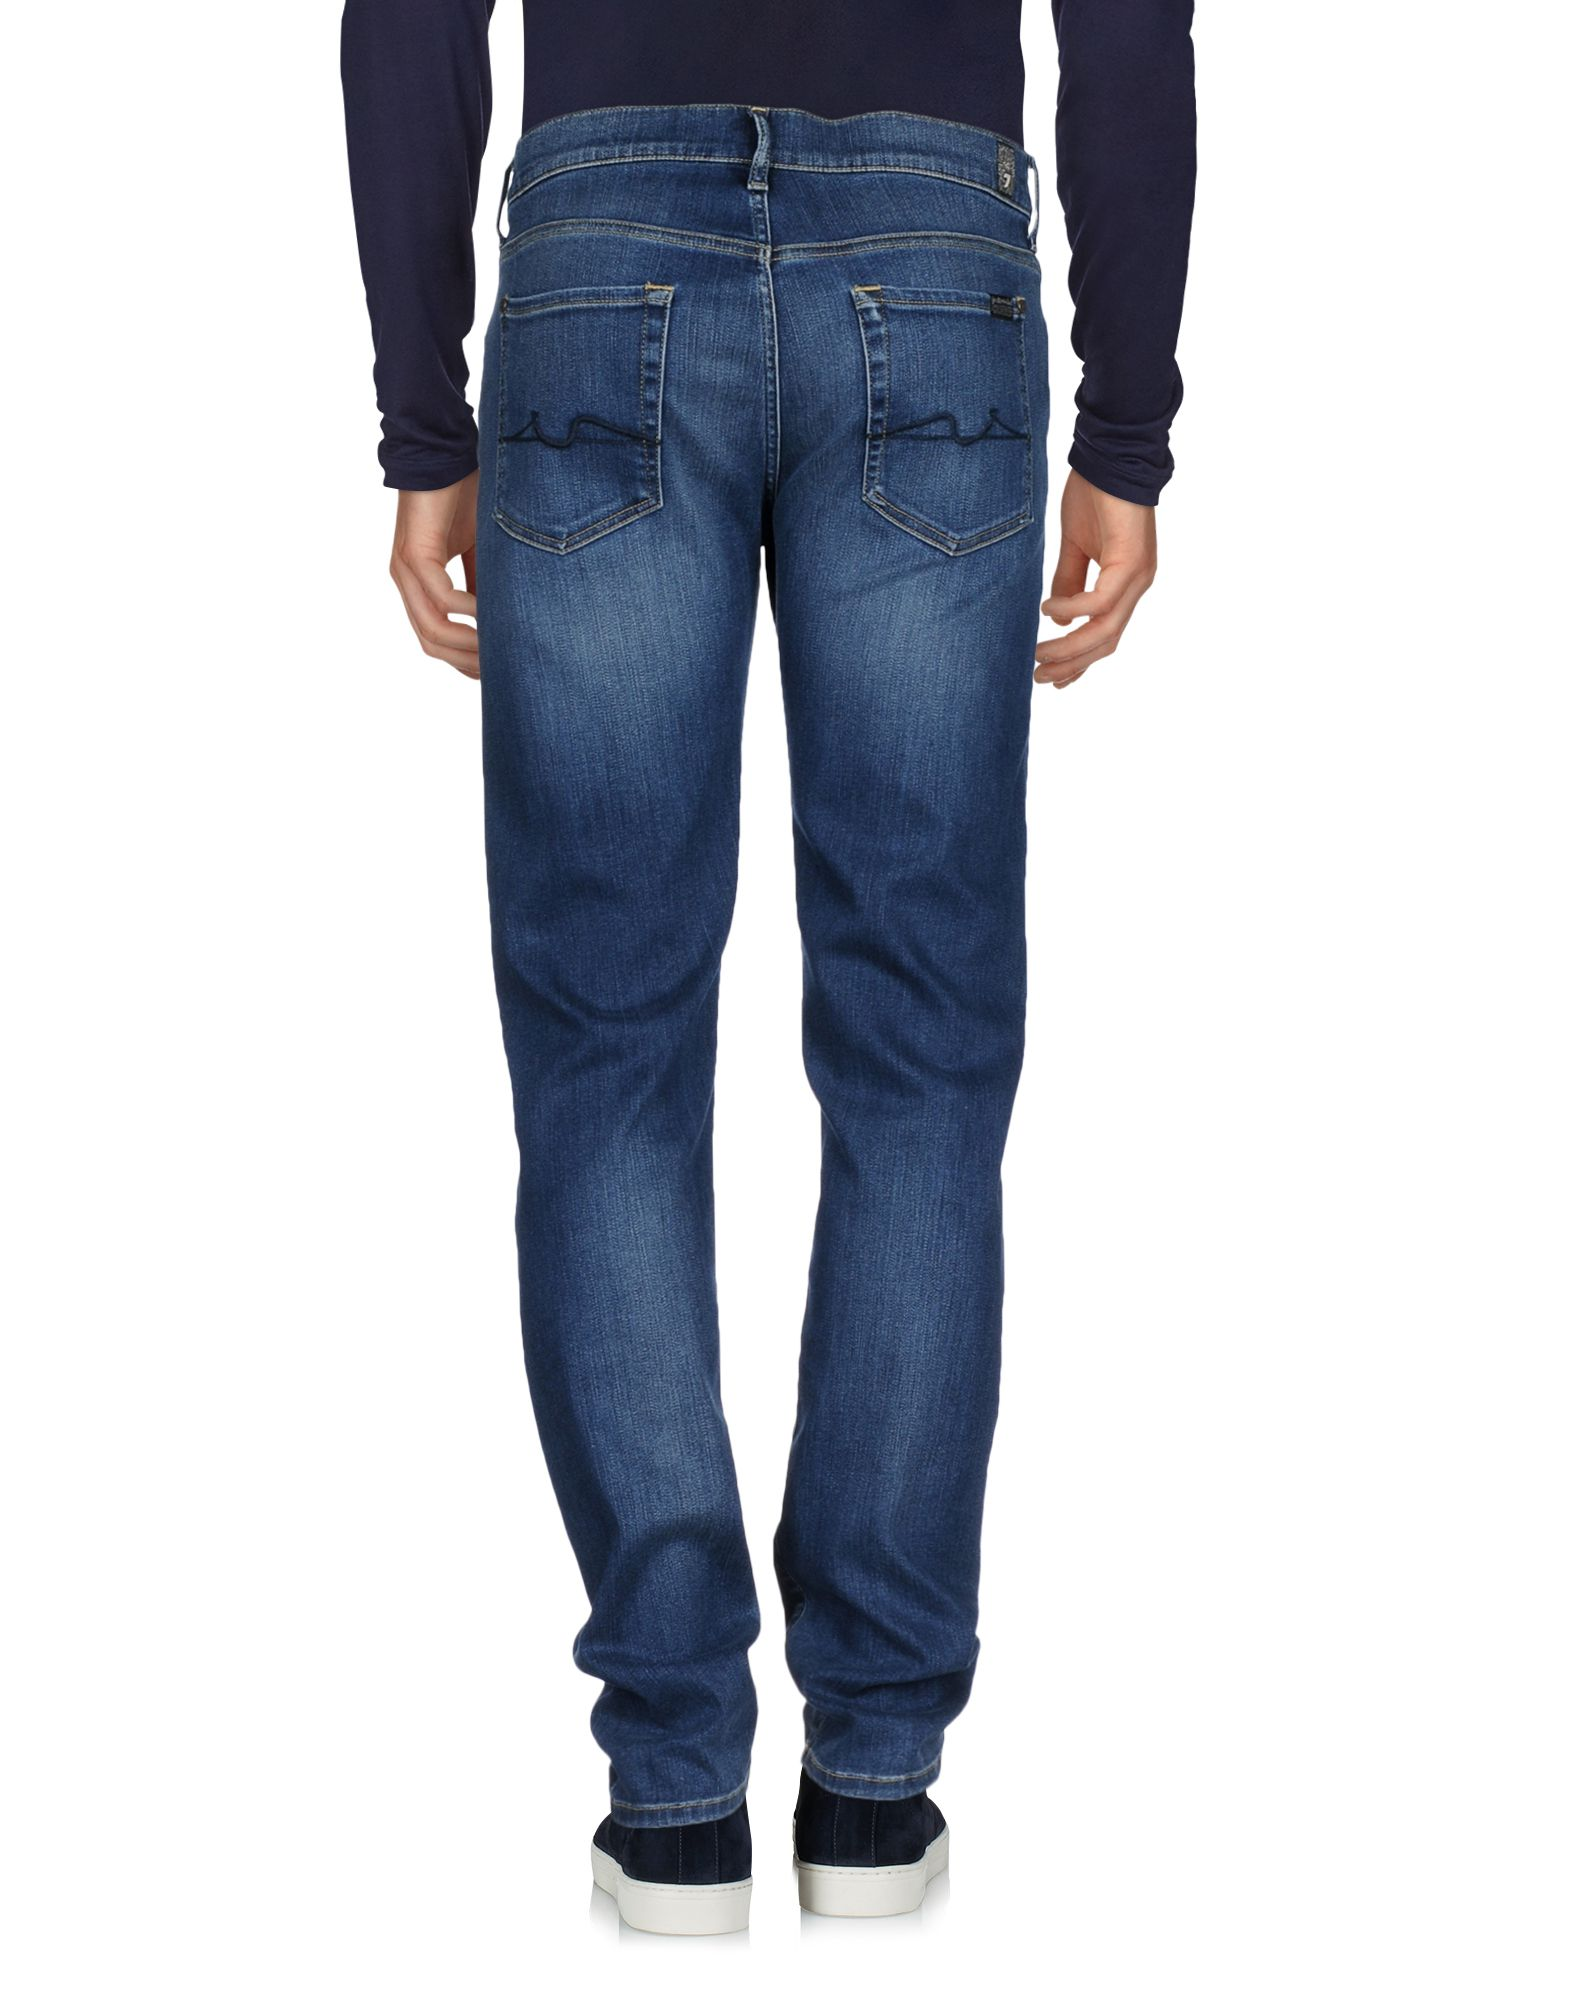 Pantaloni Jeans Mankind 7 For All Mankind Jeans Uomo - 42674622KO d8d45d